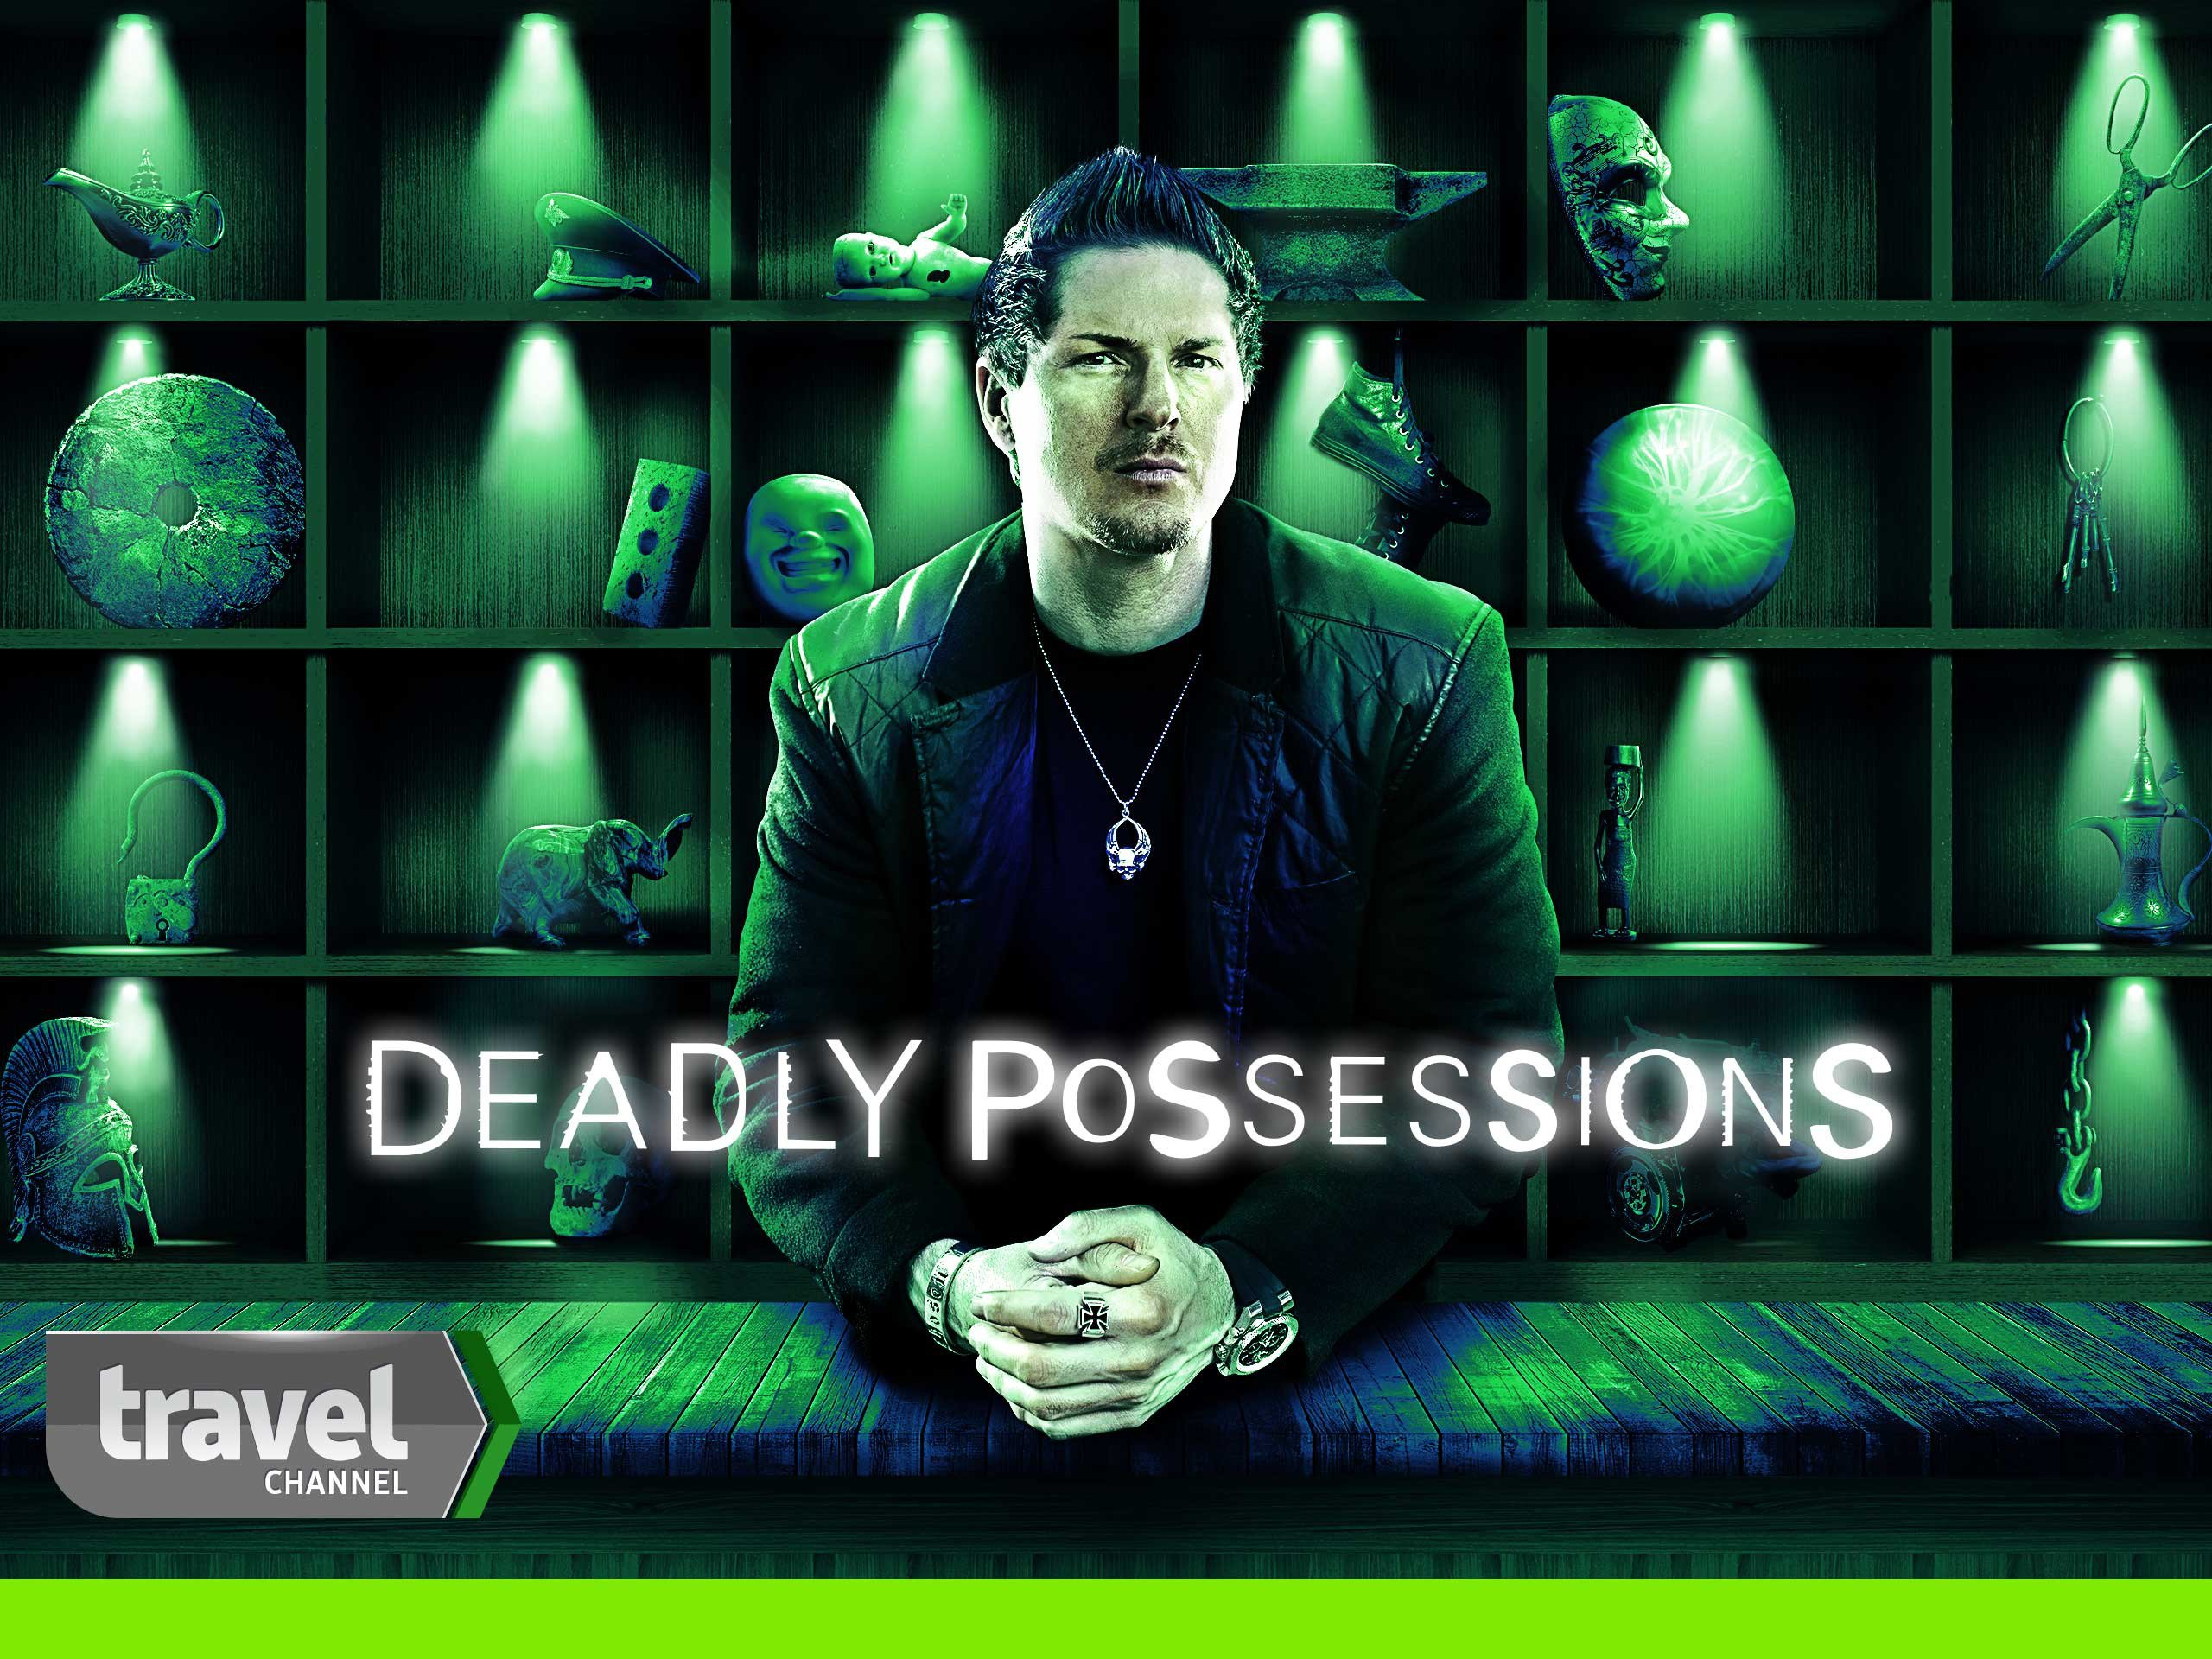 deadly possessions season 1 ep 1